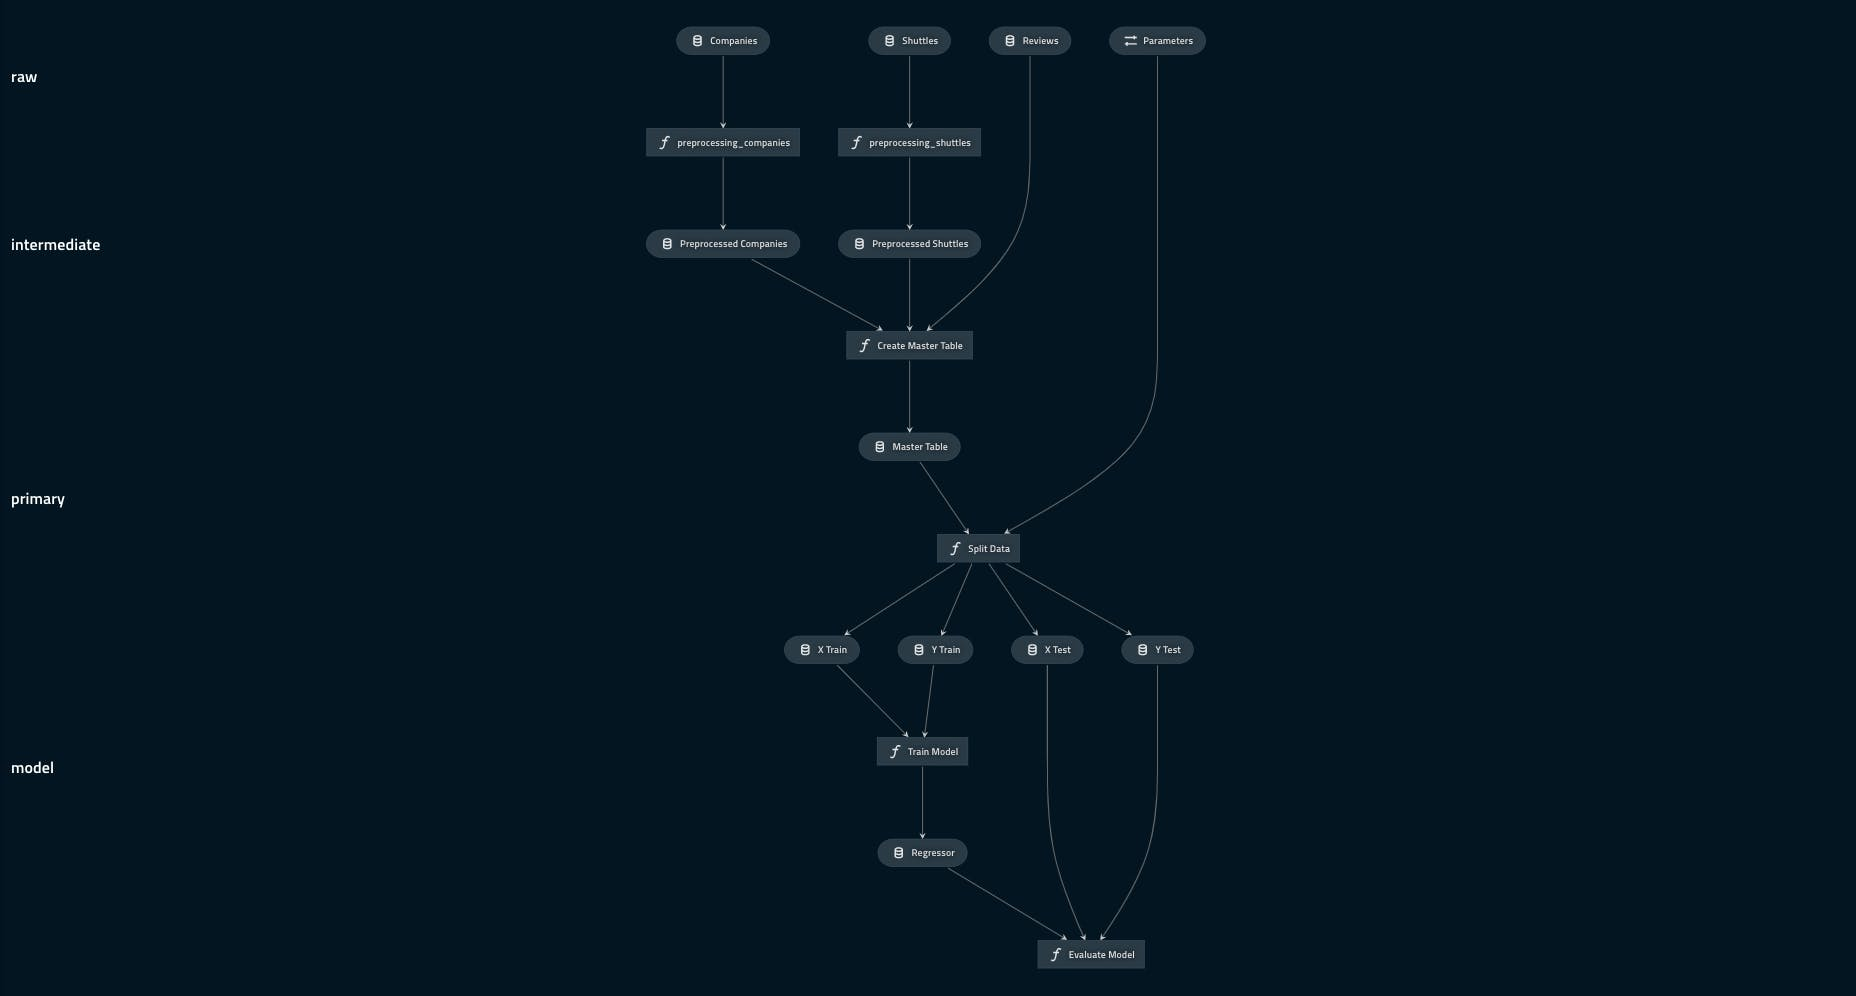 pipeline_visualisation_with_layers.png